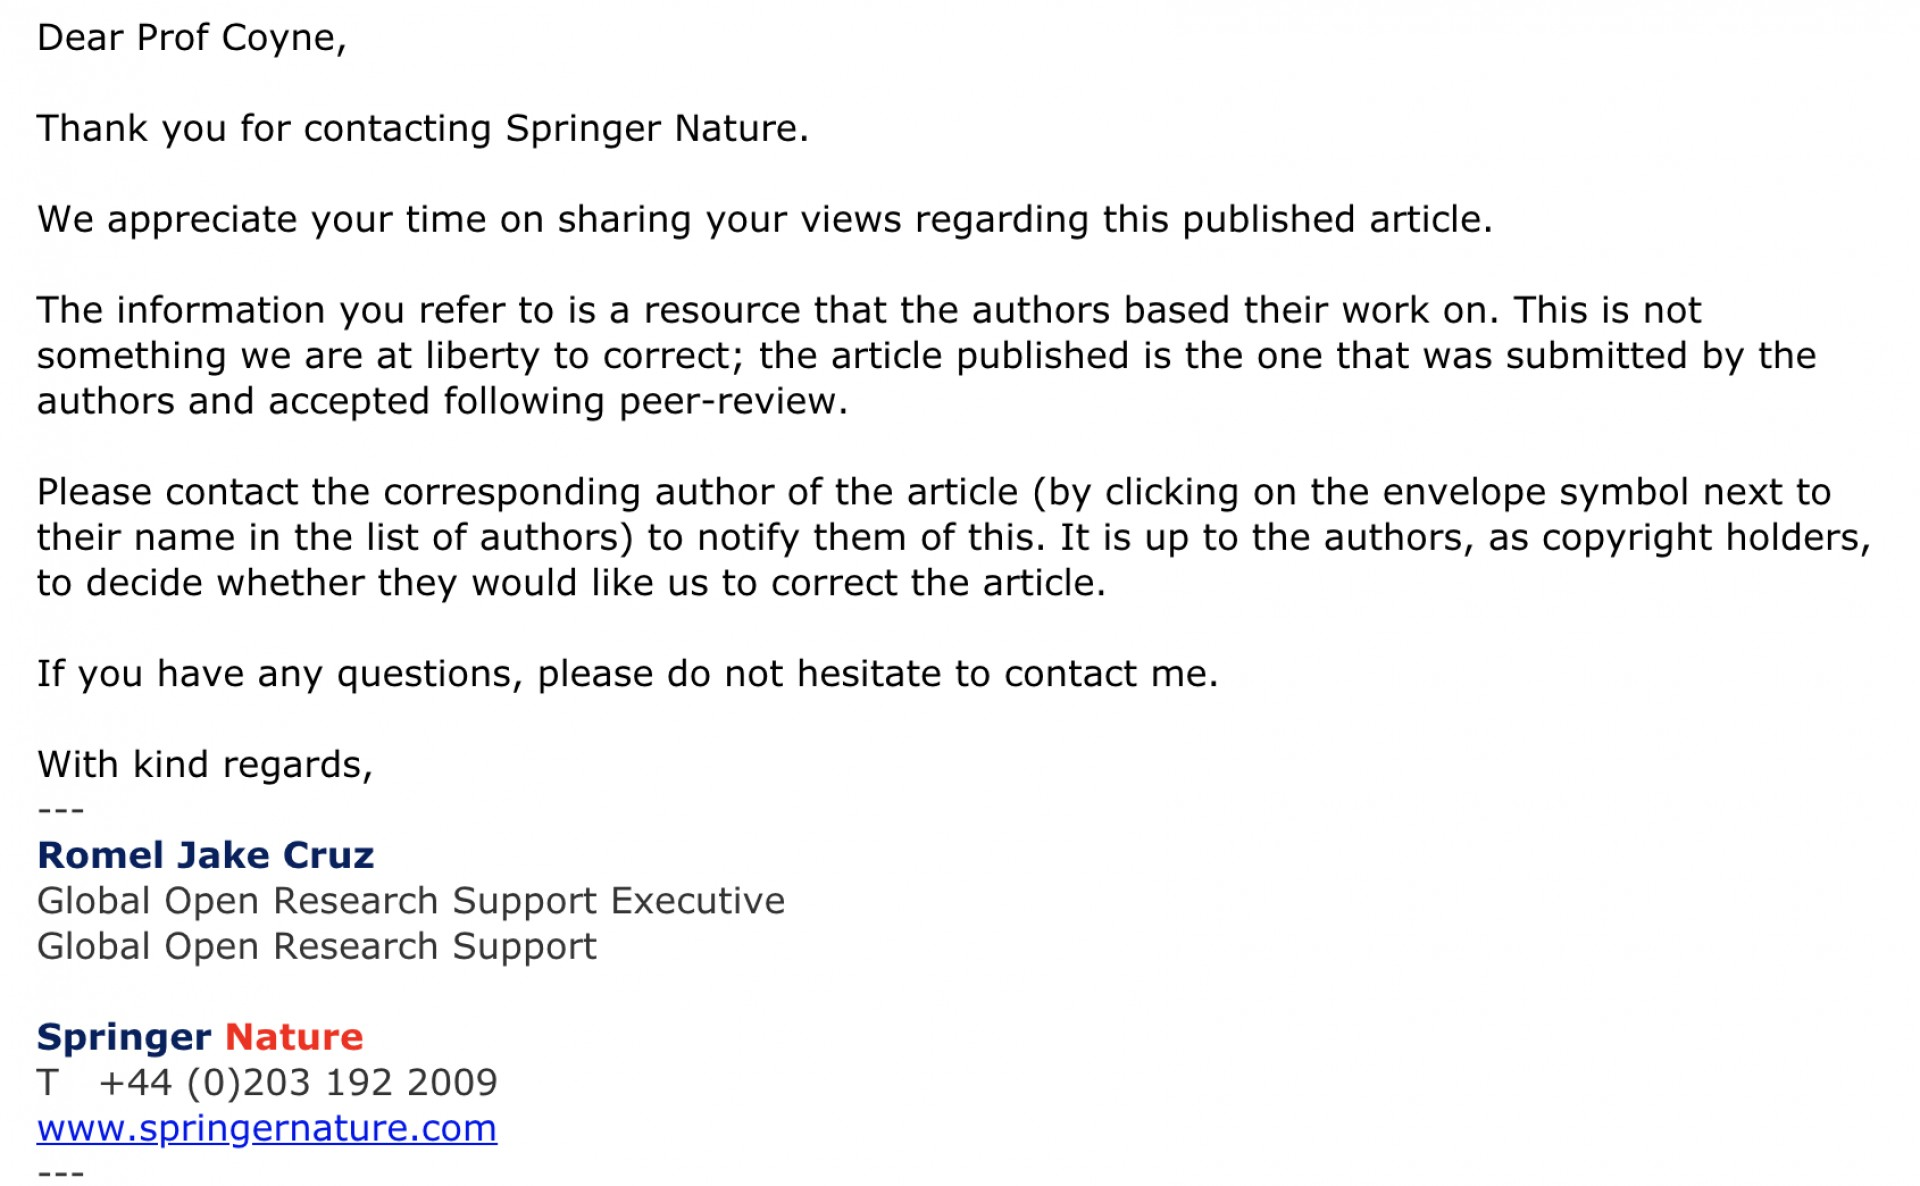 003 Research Paper How To Publish In Springer Top Journal 1920